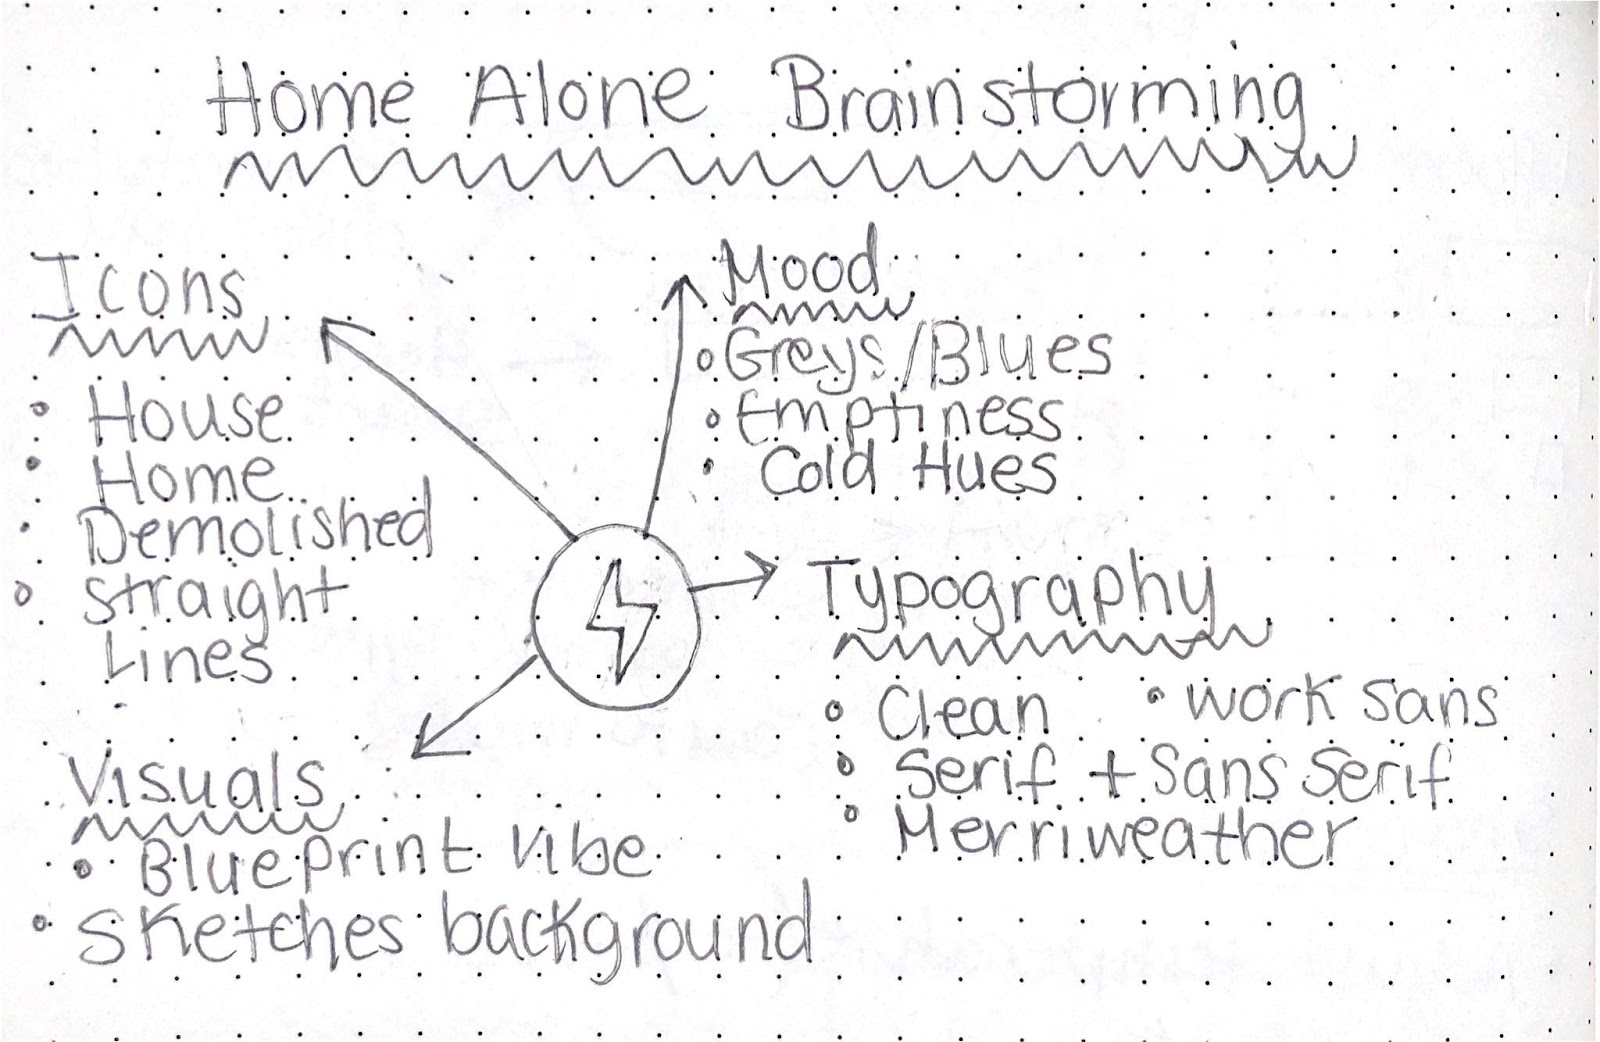 A set of handwritten brainstorming notes on a sheet of graph paper. At the top of the sheet are the words 'Home Alone Brainstorming'.